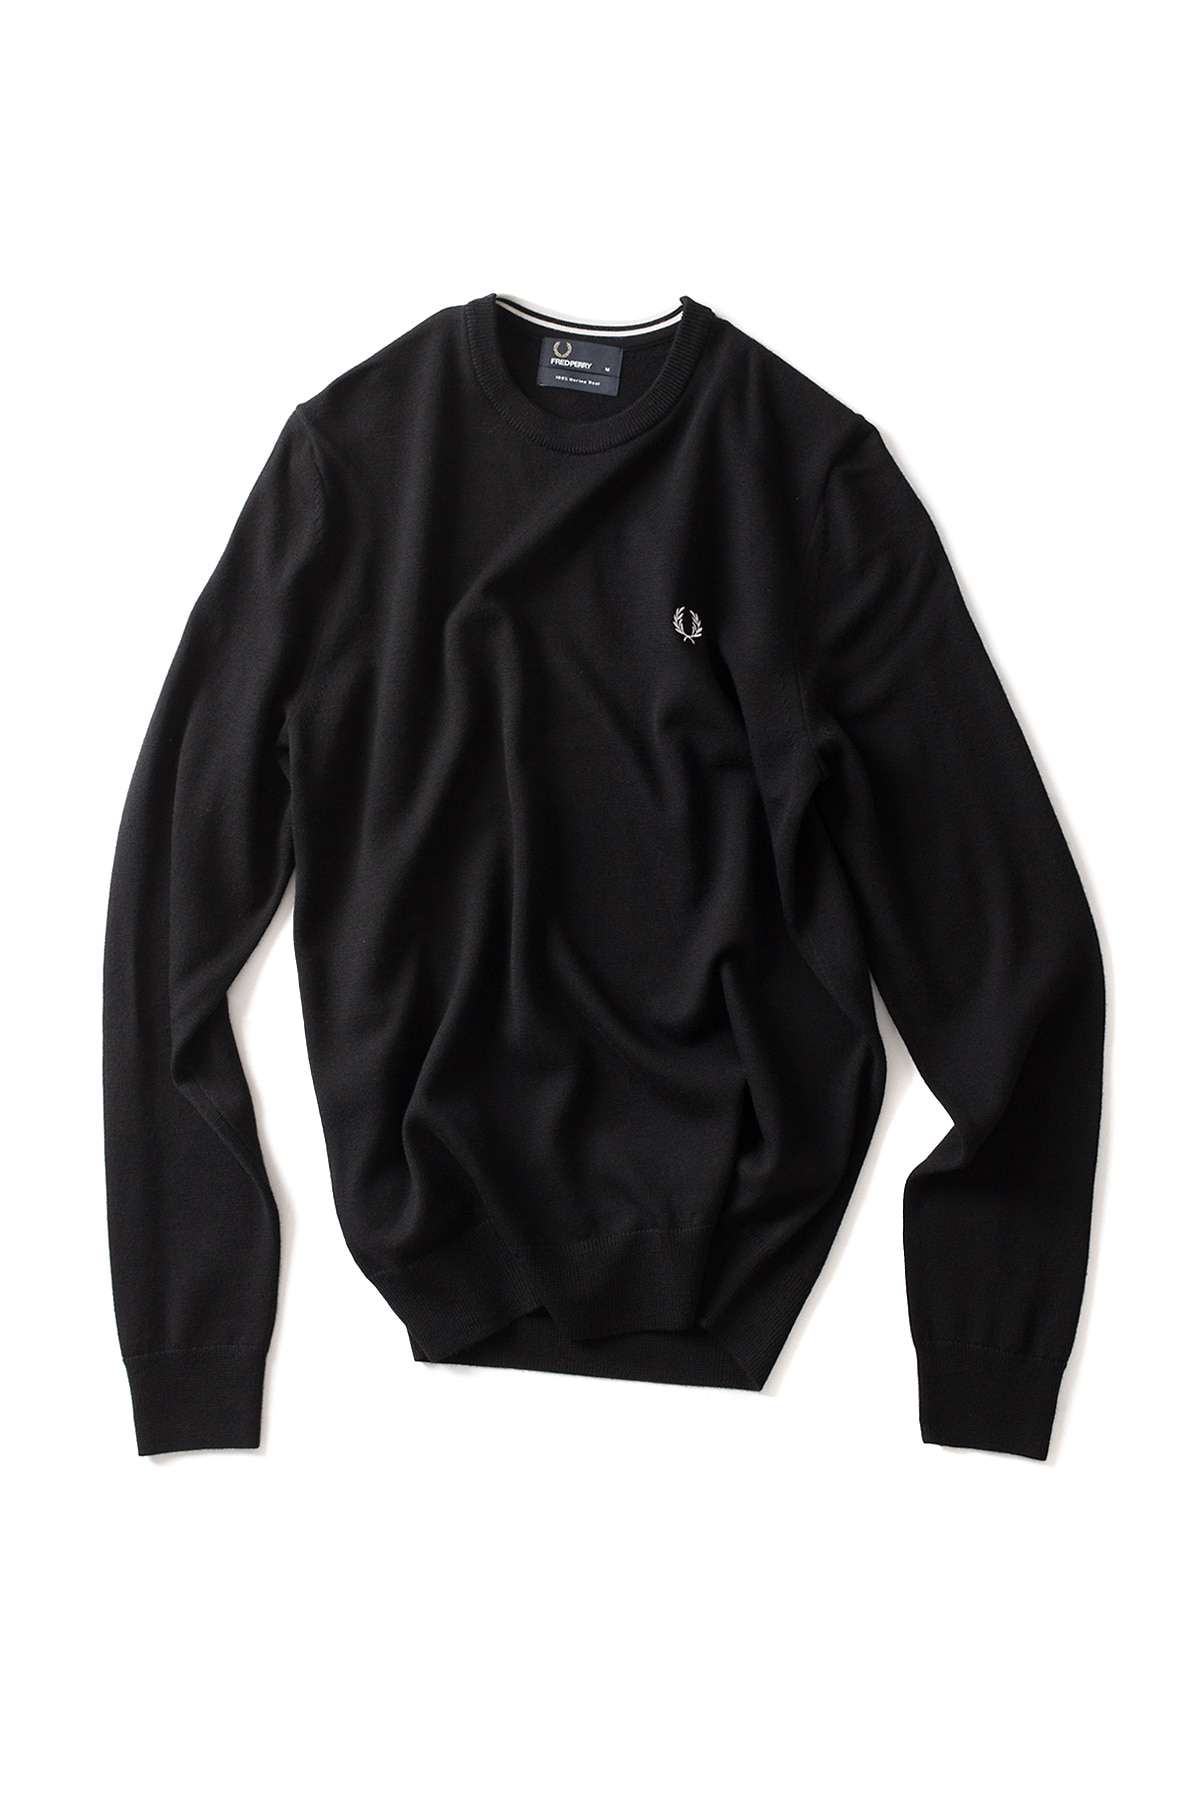 FRED PERRY : Classic Merino Crew Neck Sweater (Black)